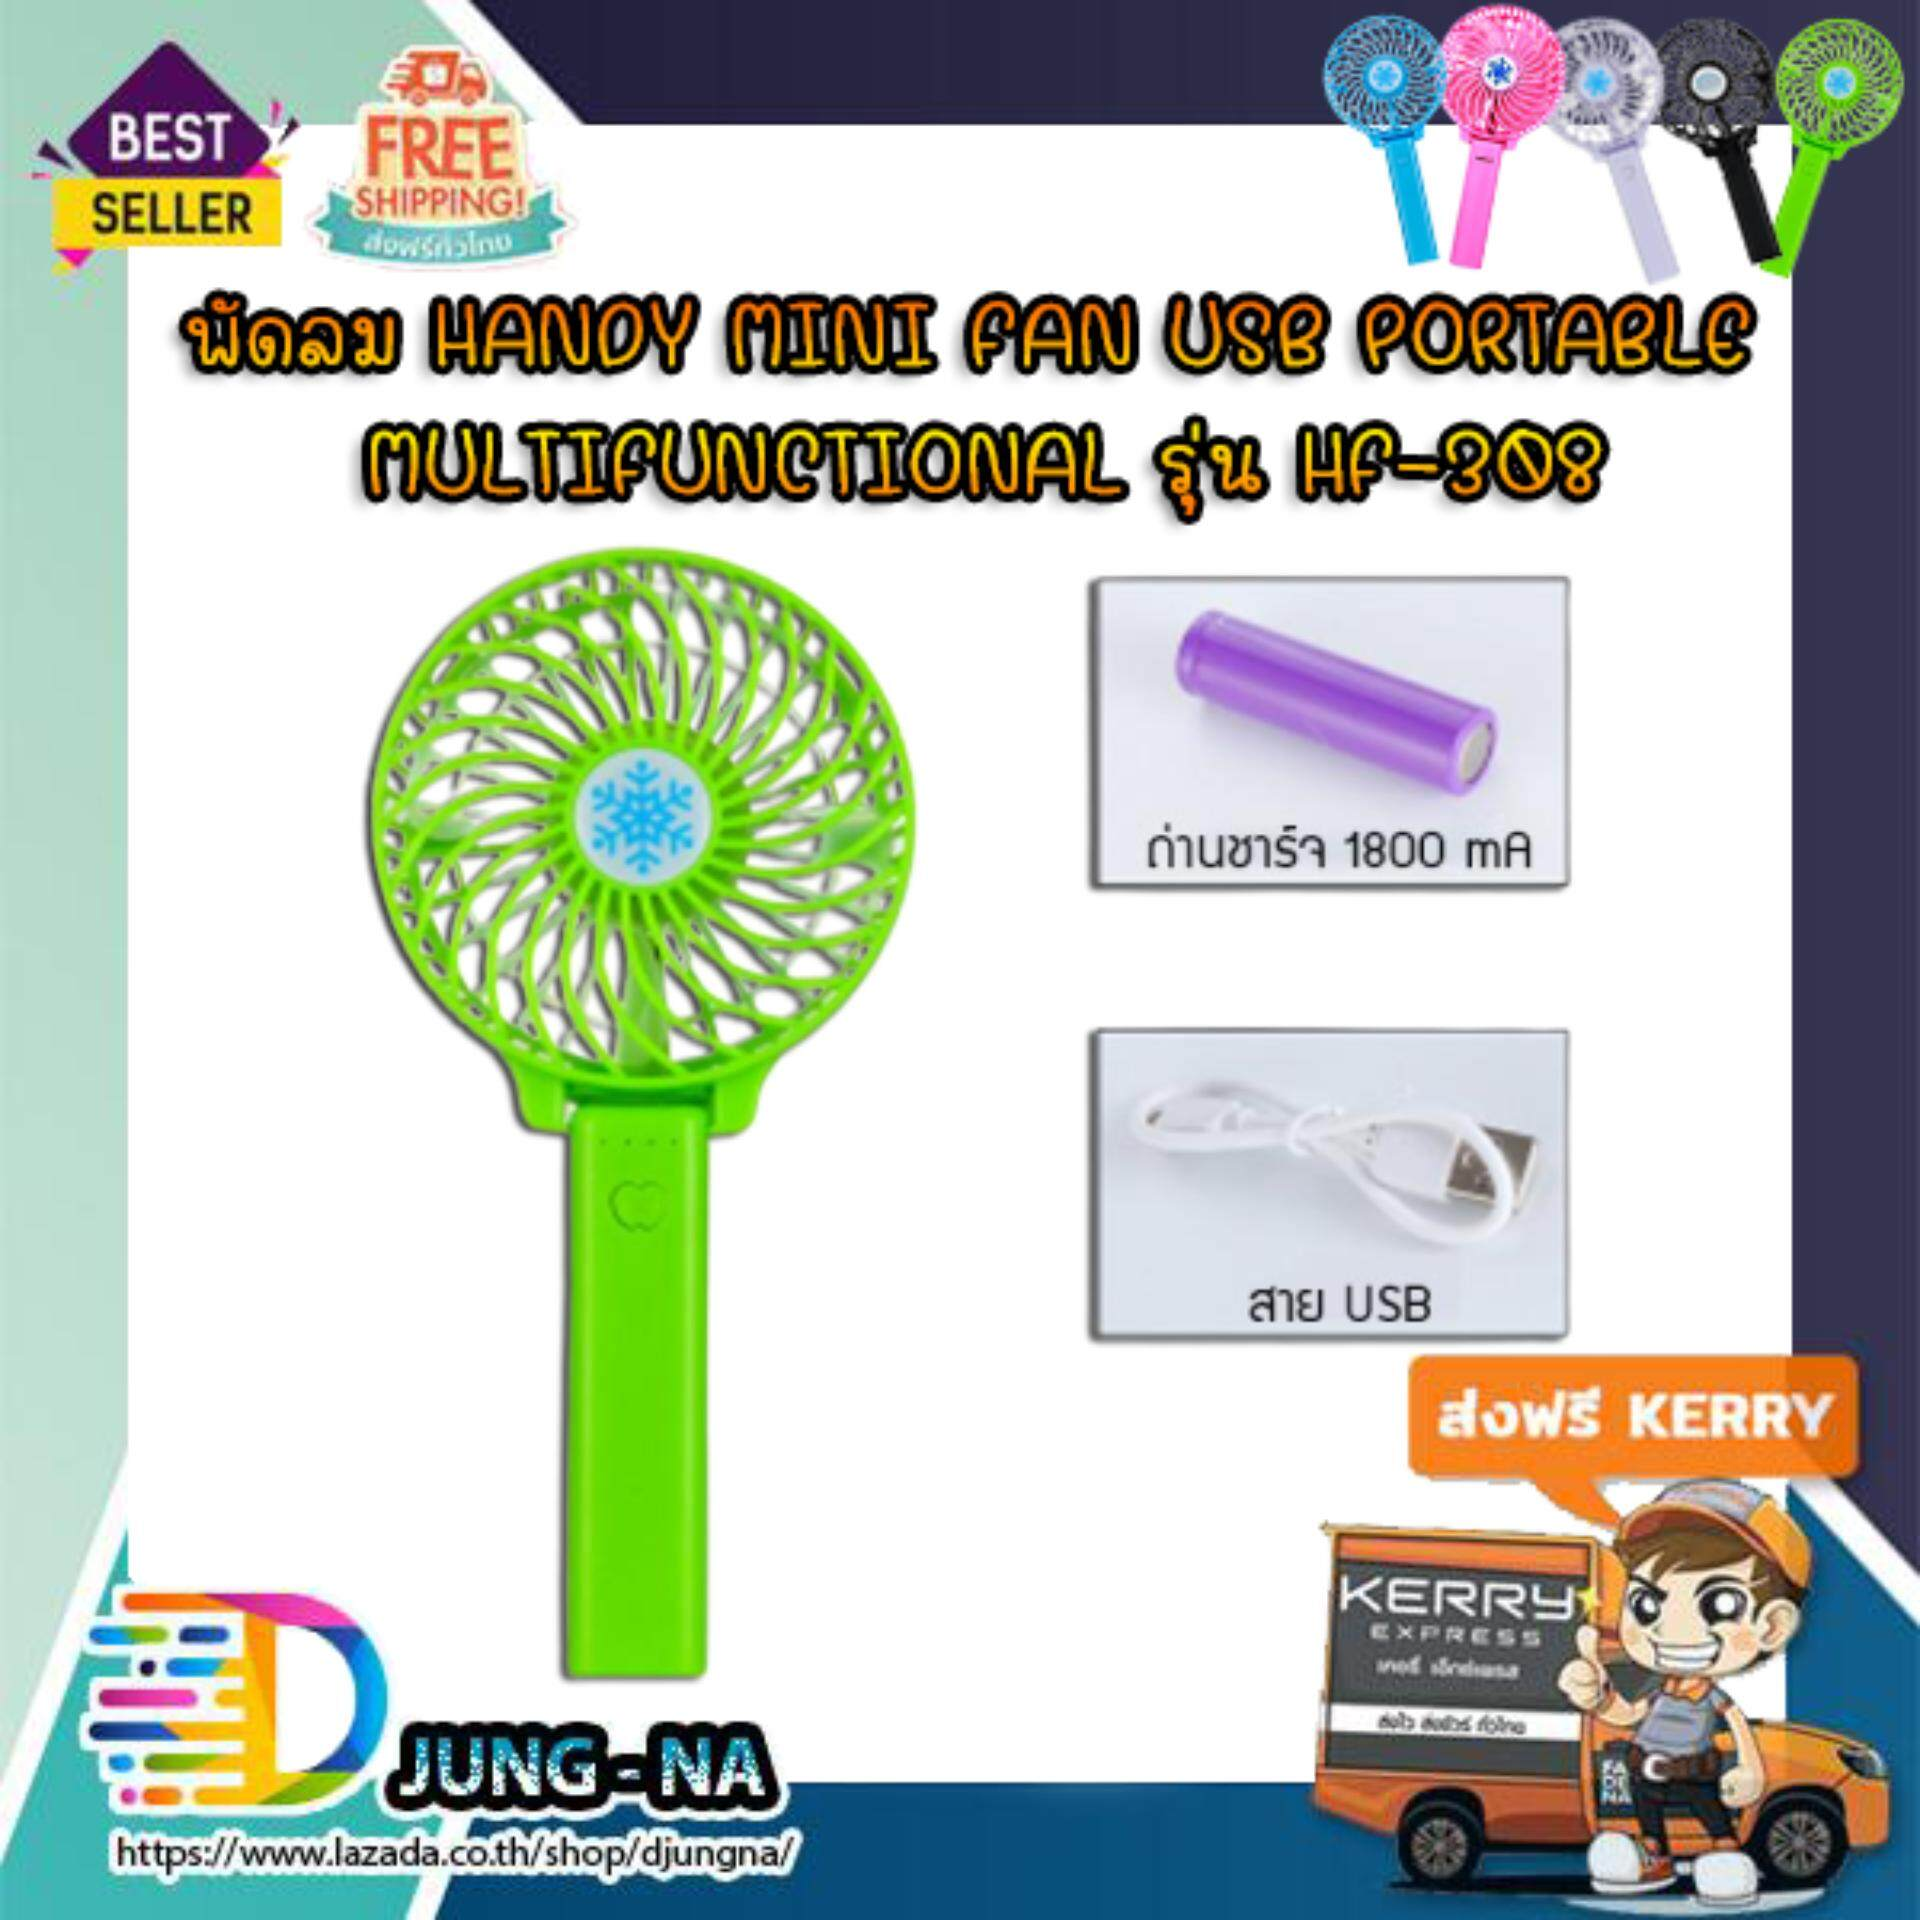 พัดลม Handy mini Fan USB Portable Multifunctional รุ่น HF-308